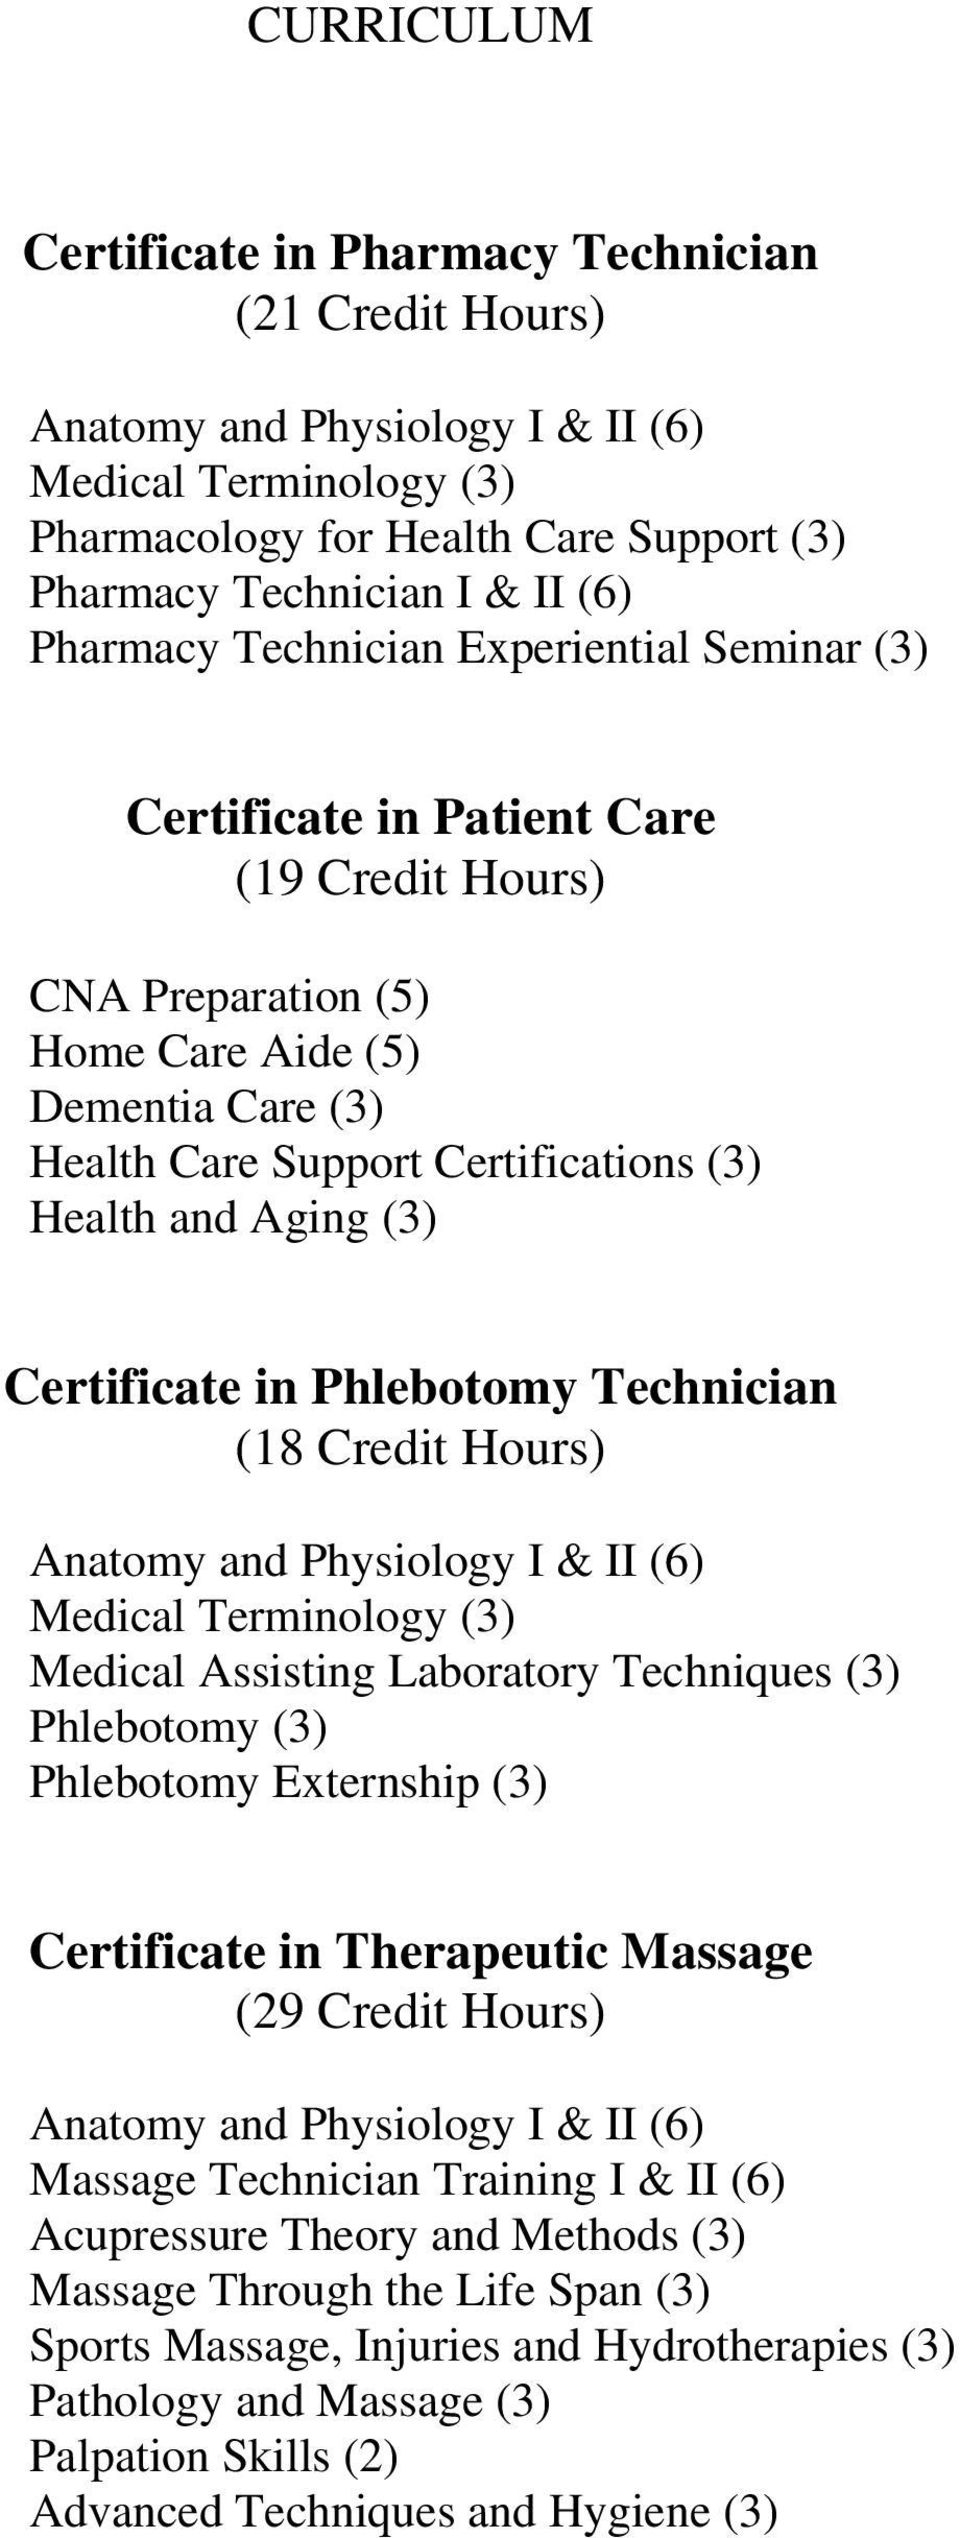 Aging (3) Certificate in Phlebotomy Technician (18 Credit Hours) Anatomy and Physiology I & II (6) Medical Terminology (3) Medical Assisting Laboratory Techniques (3) Phlebotomy (3) Phlebotomy